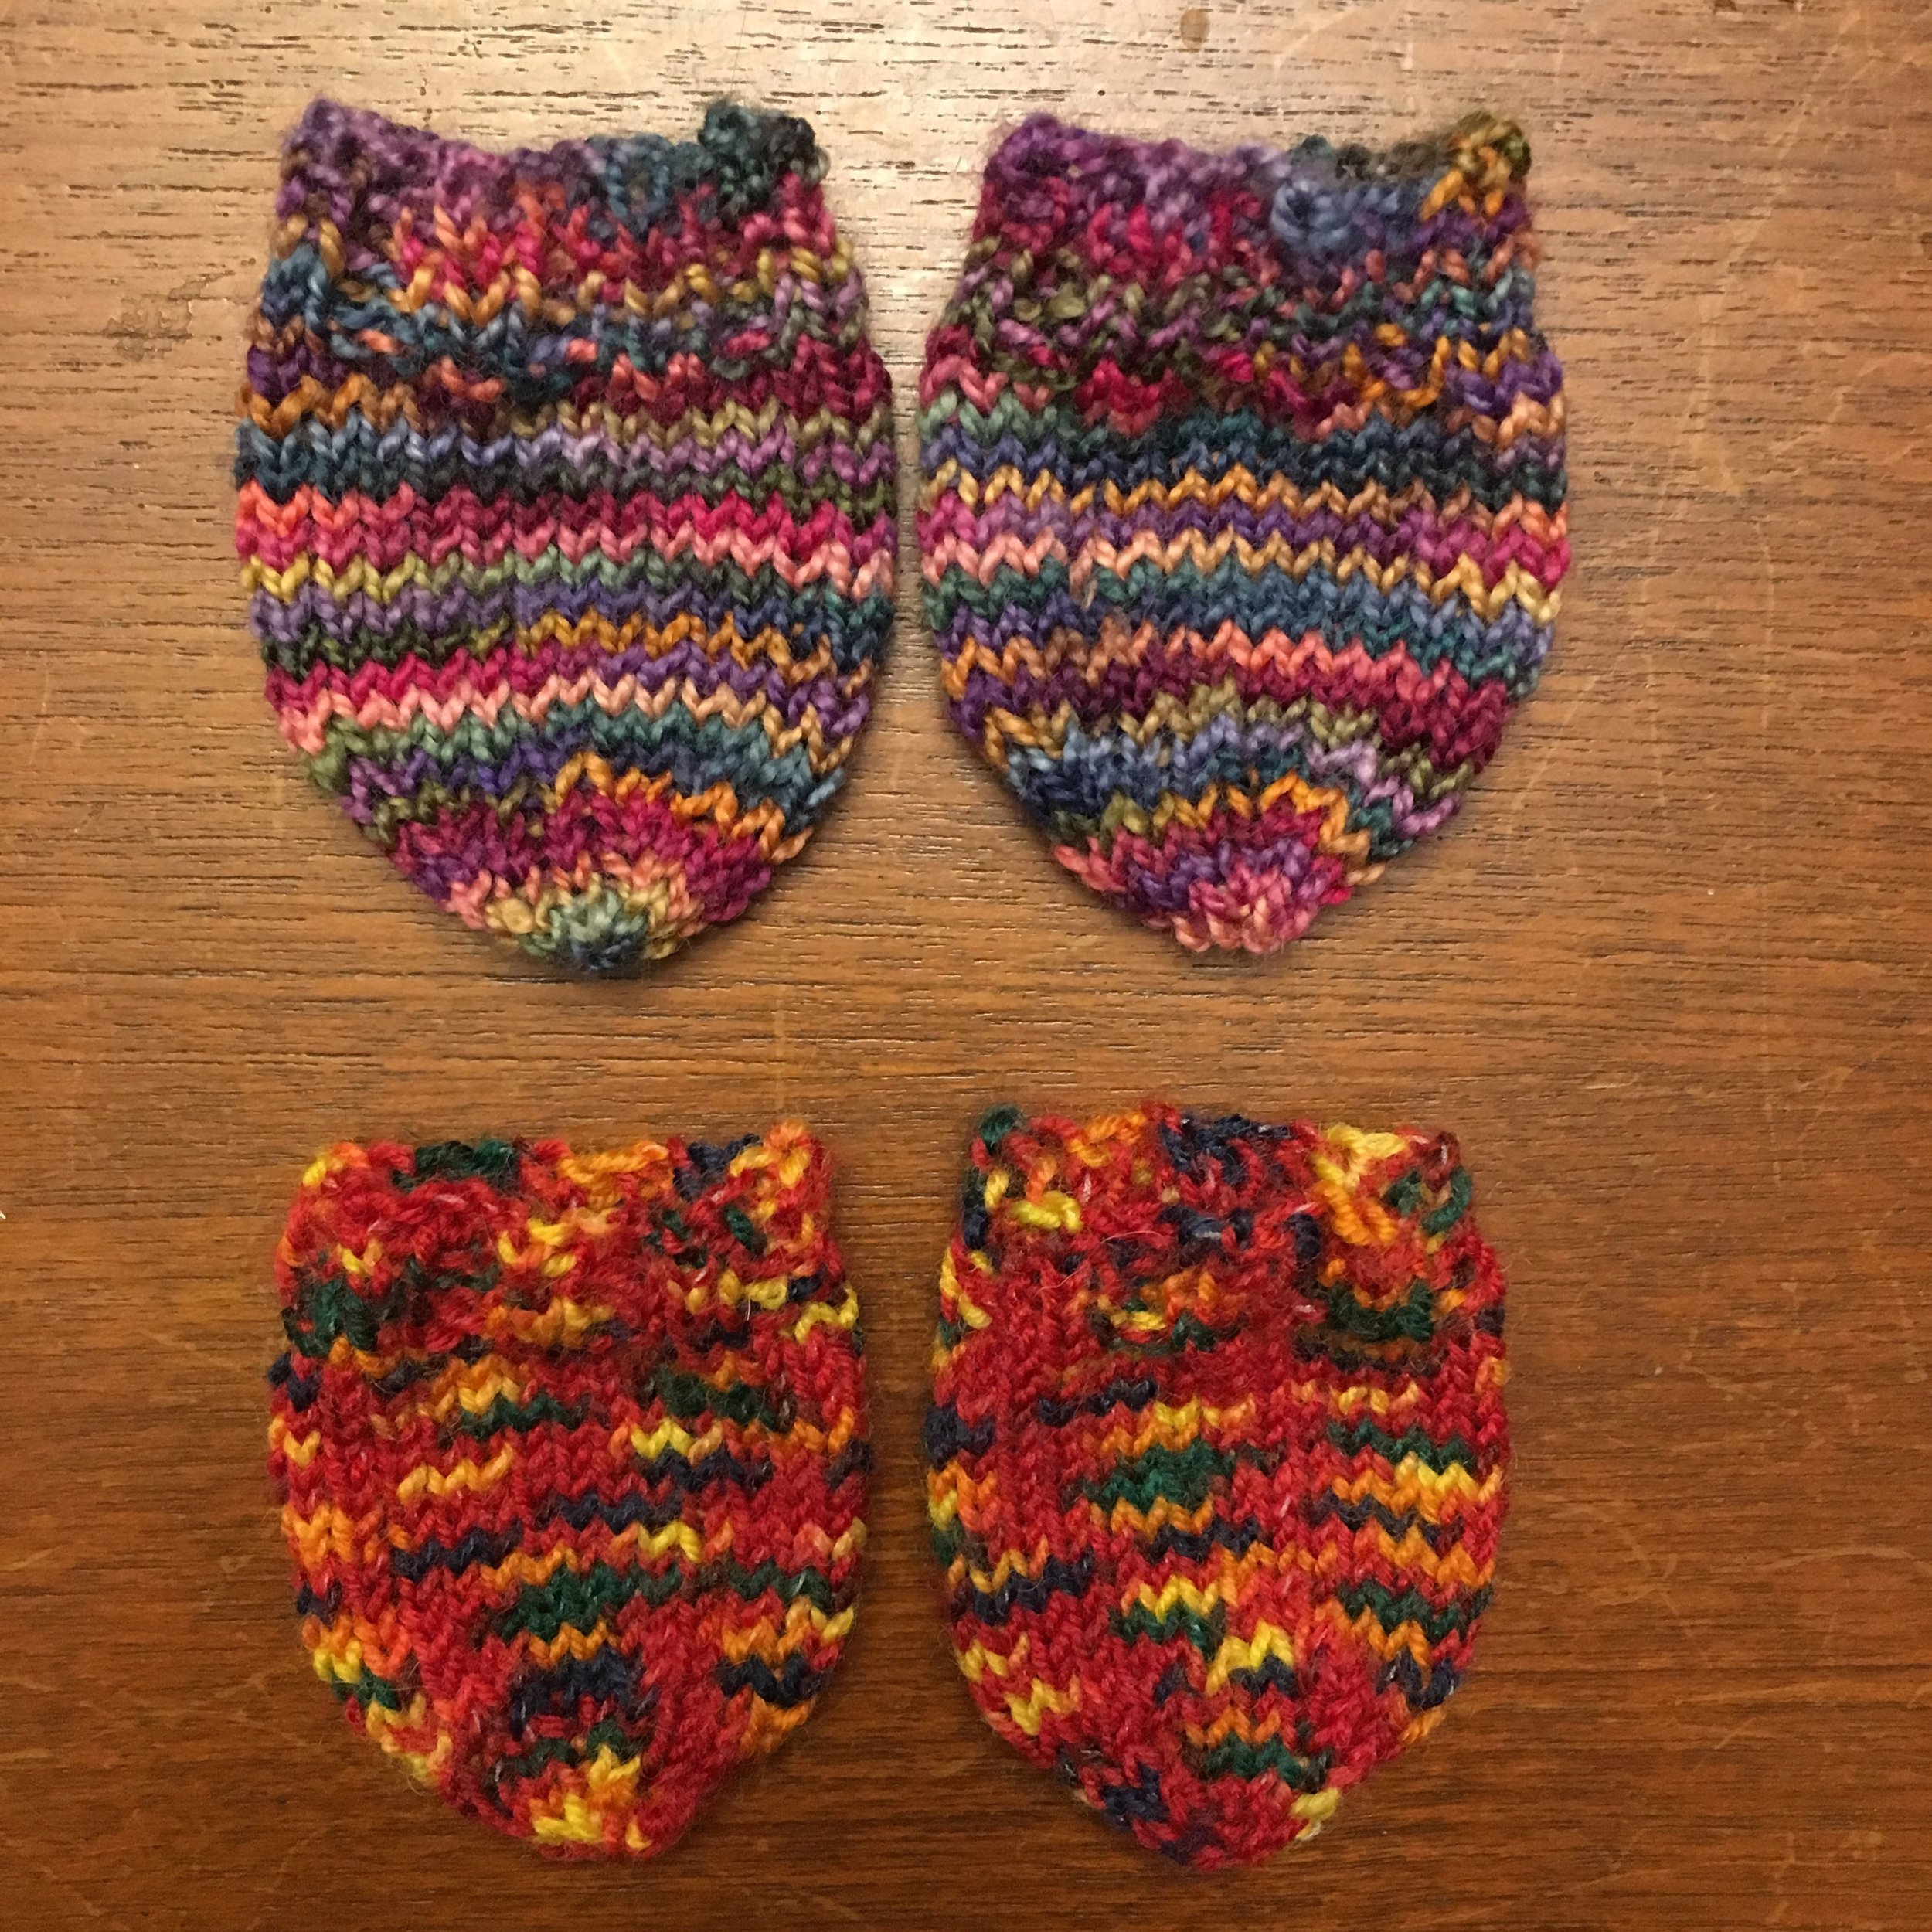 """Socks for 11-12"""" Traditional Waldorf Type dolls with a 4 1/2 inch ankle (foot) circumference. They will fit  Bamboletta Little Buddy  dolls."""